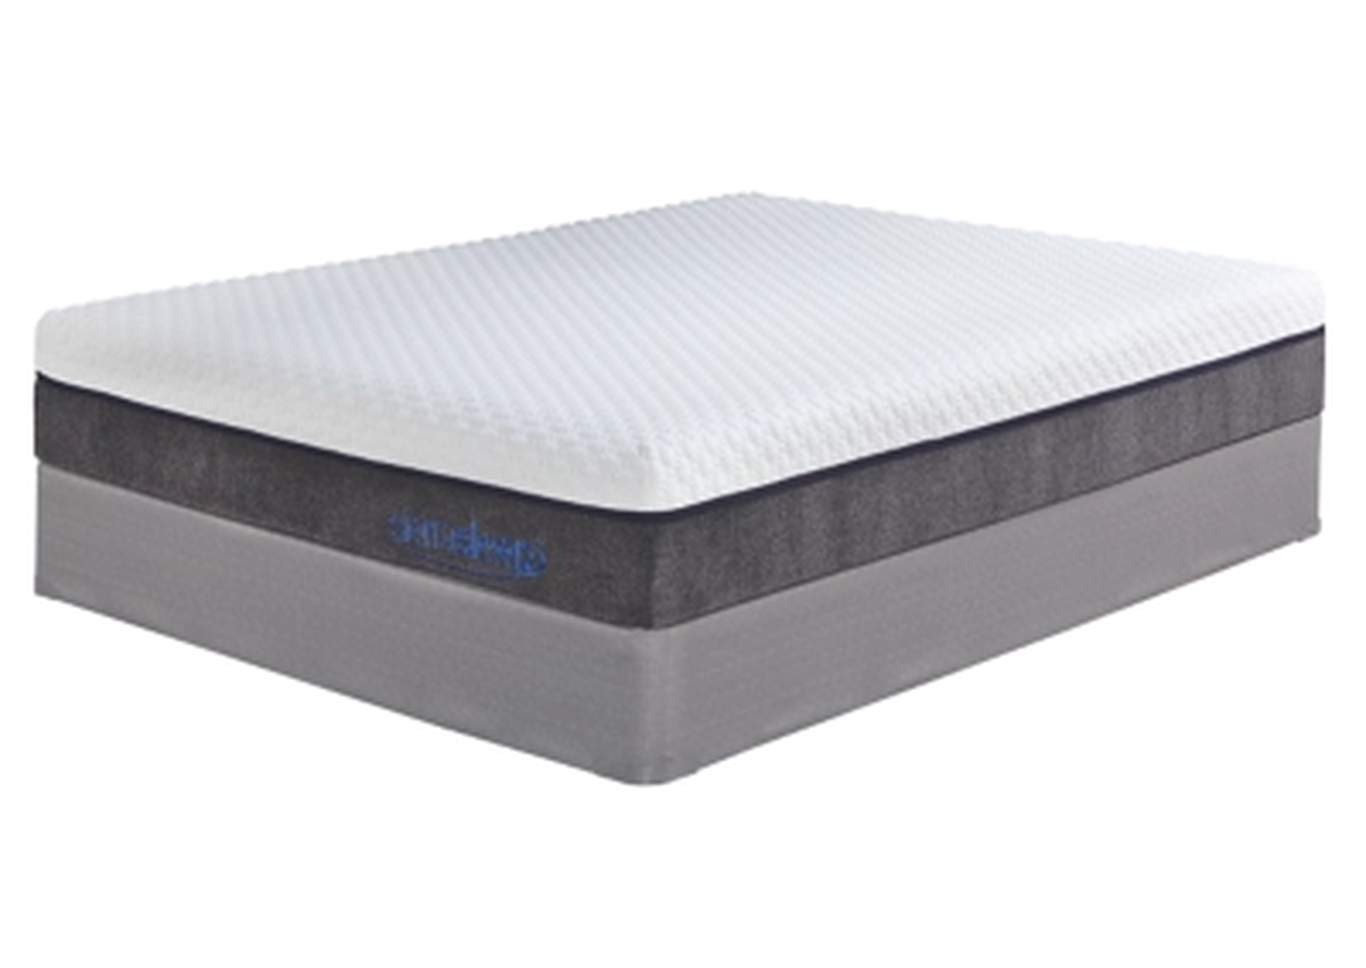 Mygel Hybrid 1100 King Mattress,Sierra Sleep by Ashley